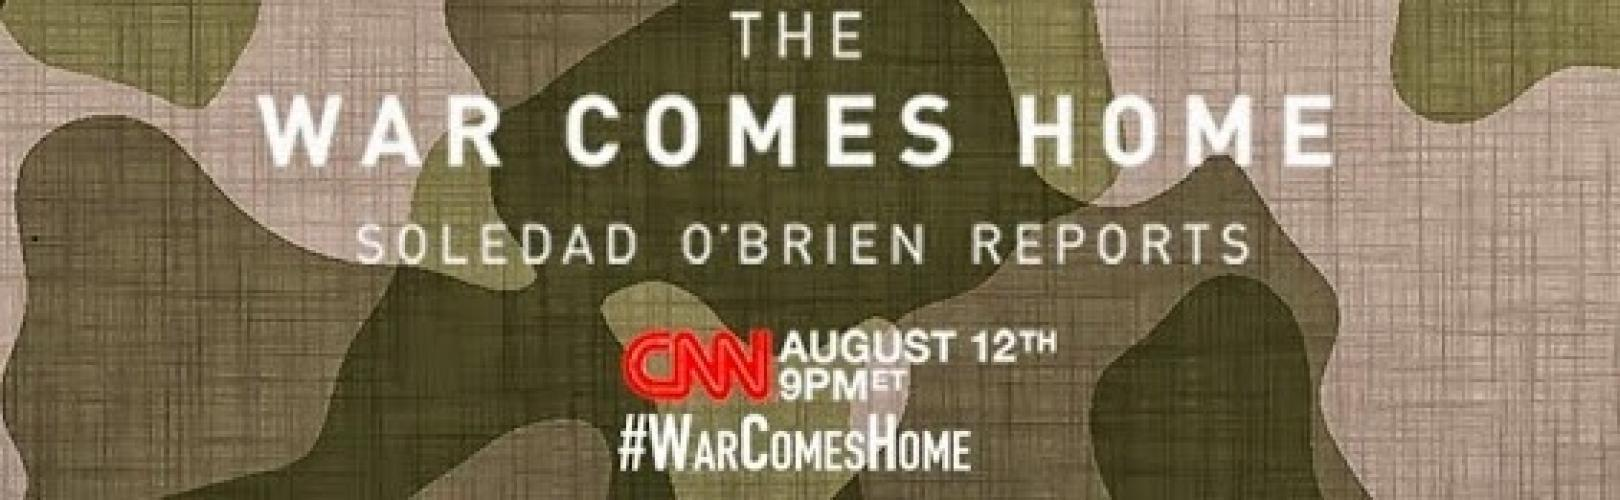 CNN Special Report: The War Comes Home: Soledad O'Brien Reports next episode air date poster